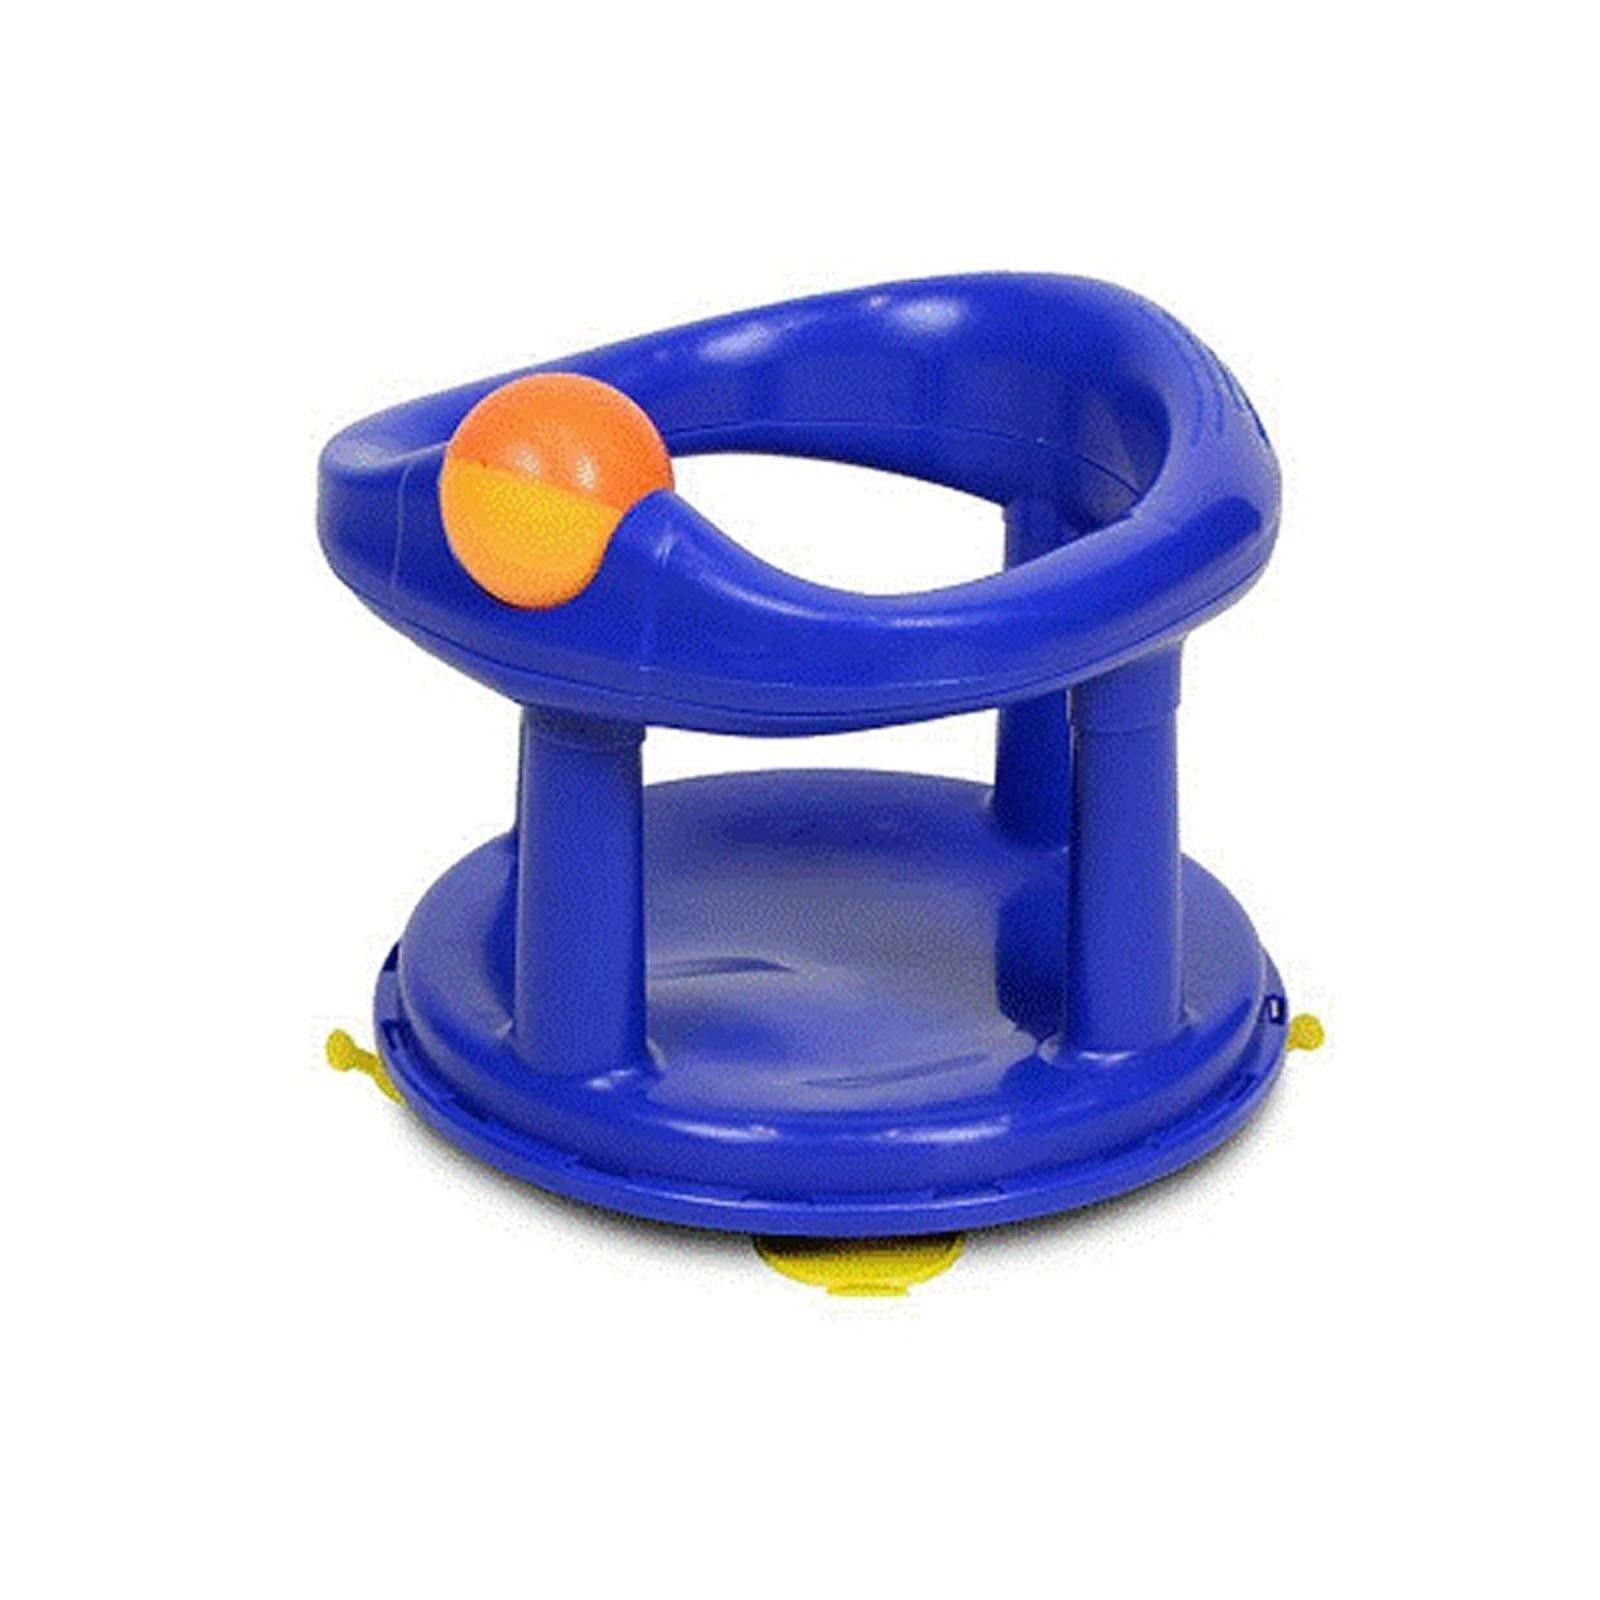 Safety 1St Swivel Blue Baby Bath Seat (Primary) | Pinterest | Baby ...